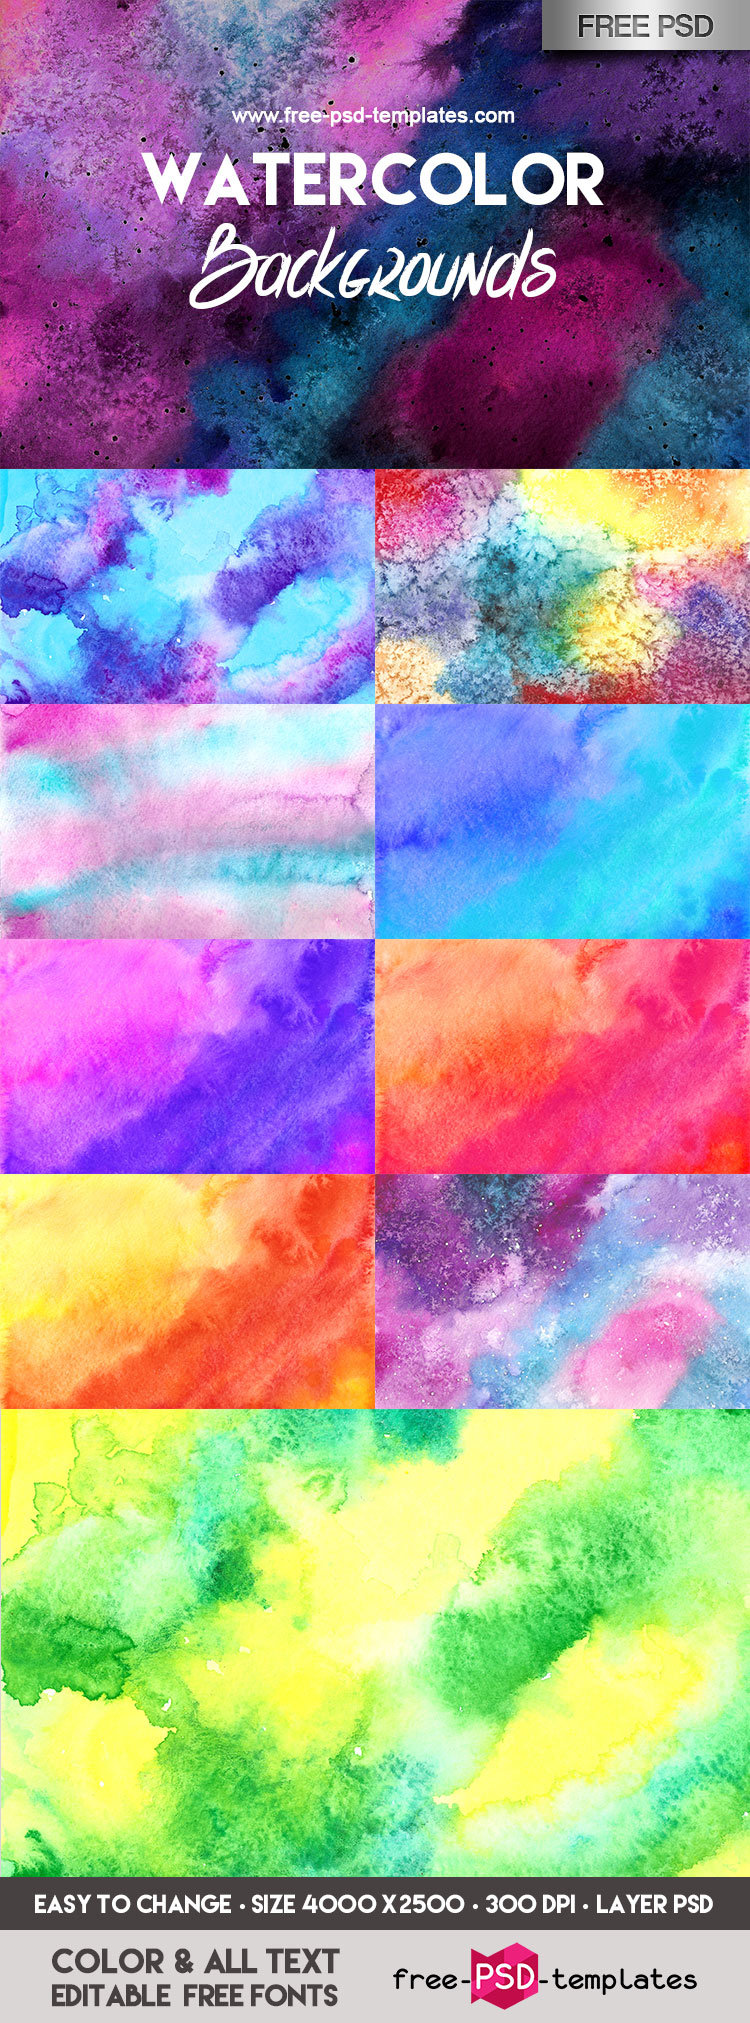 FREE Watercolor Backgrounds Bundle IN PSD | Free PSD Templates